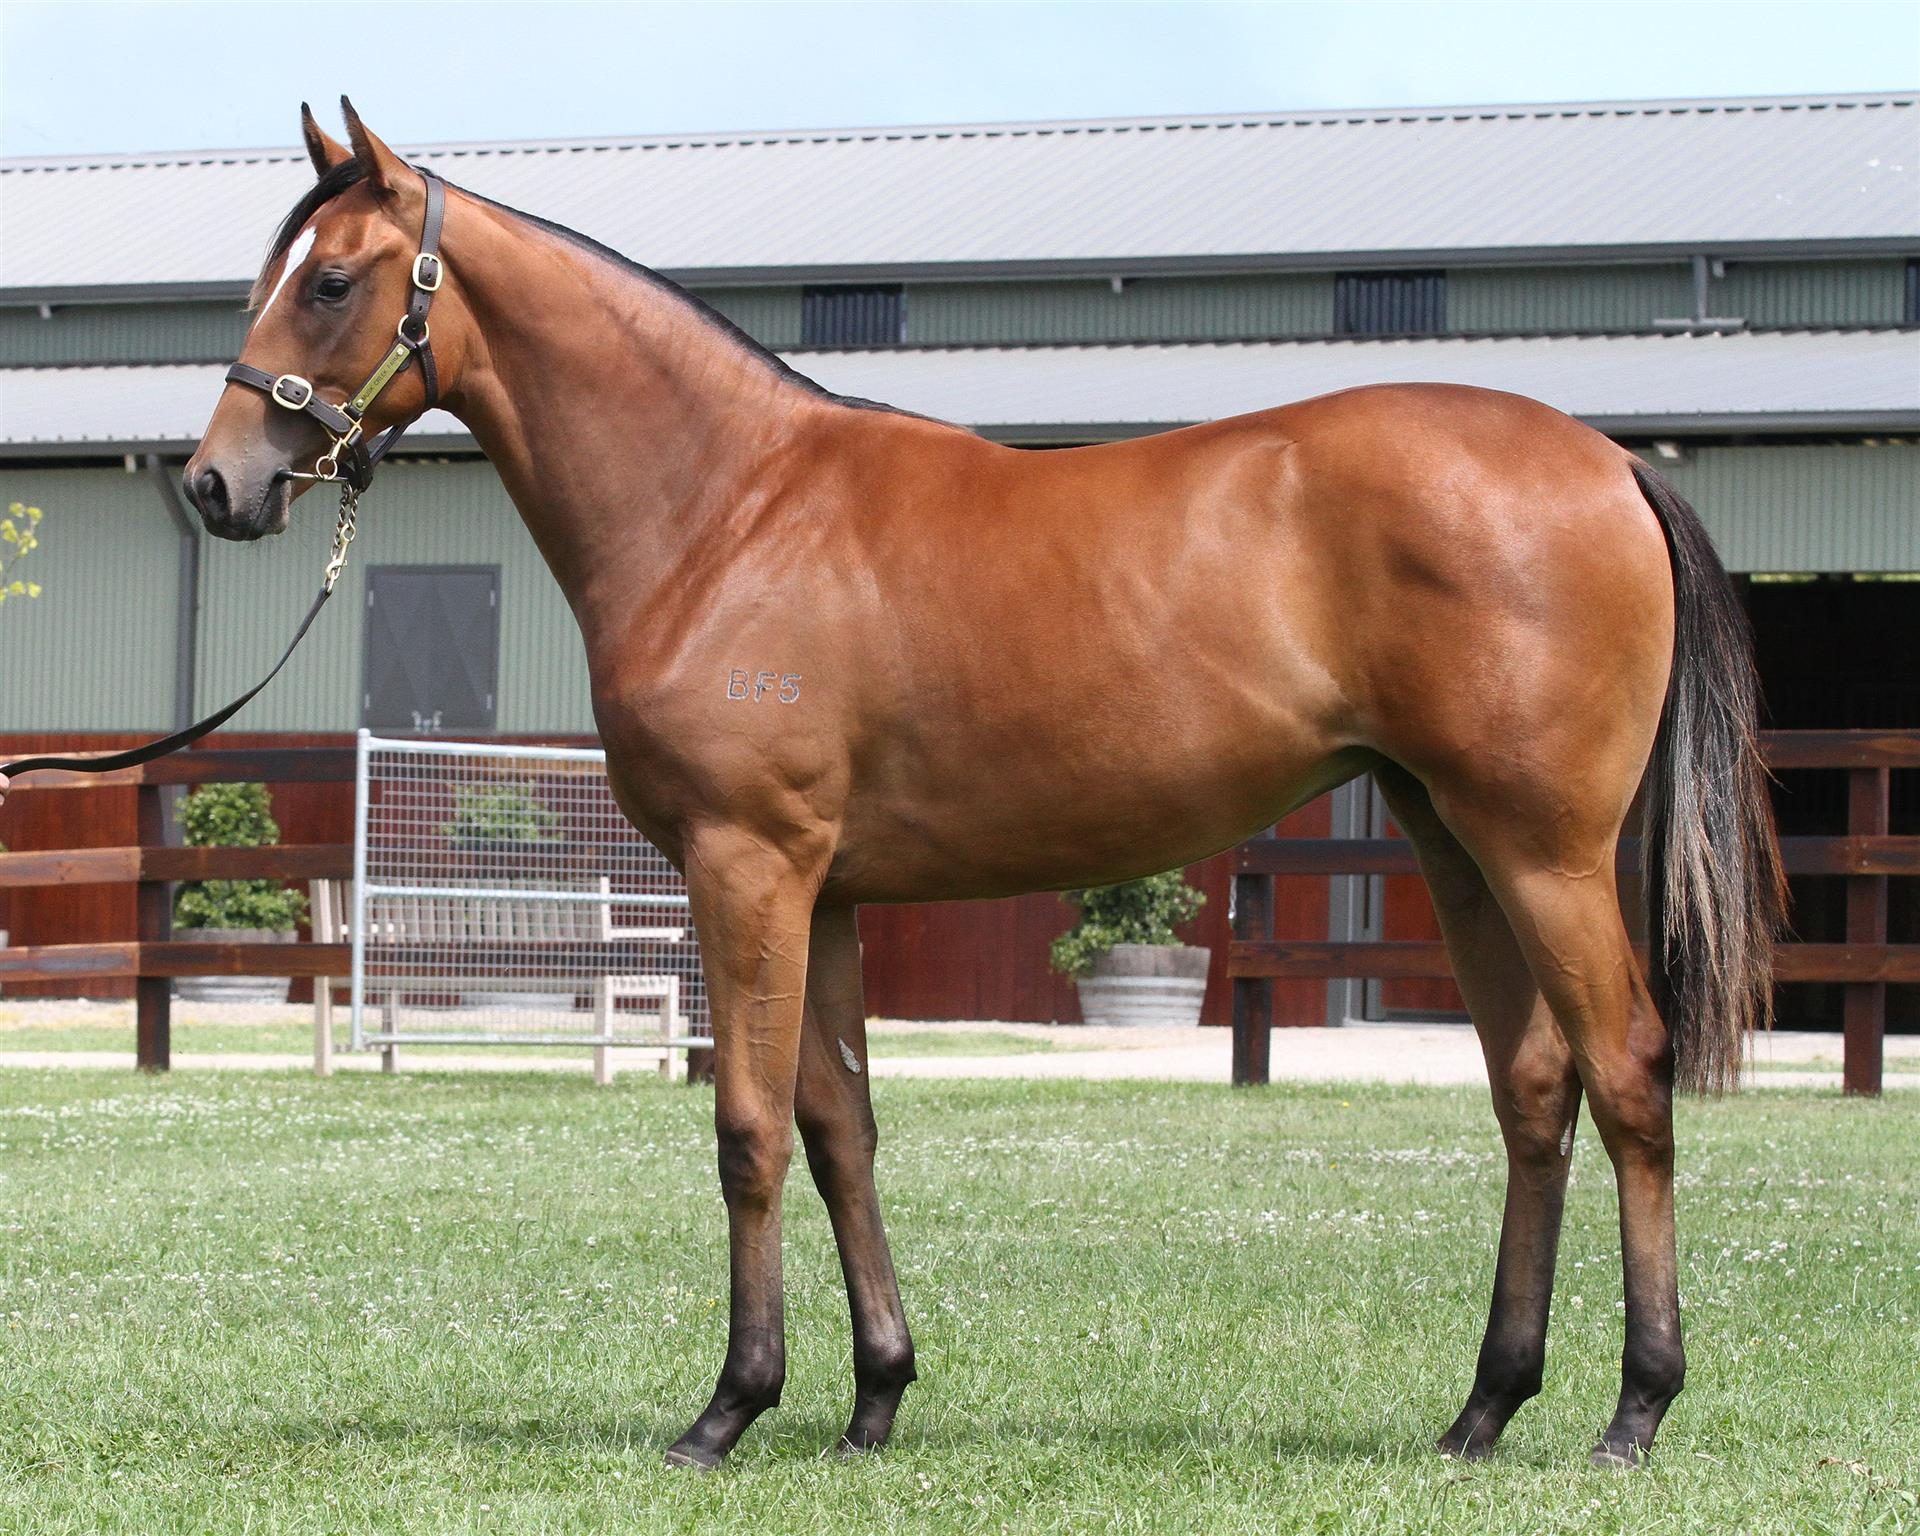 Lot 427 Magic Millions Gold Coast - Snitzel x Marsawra